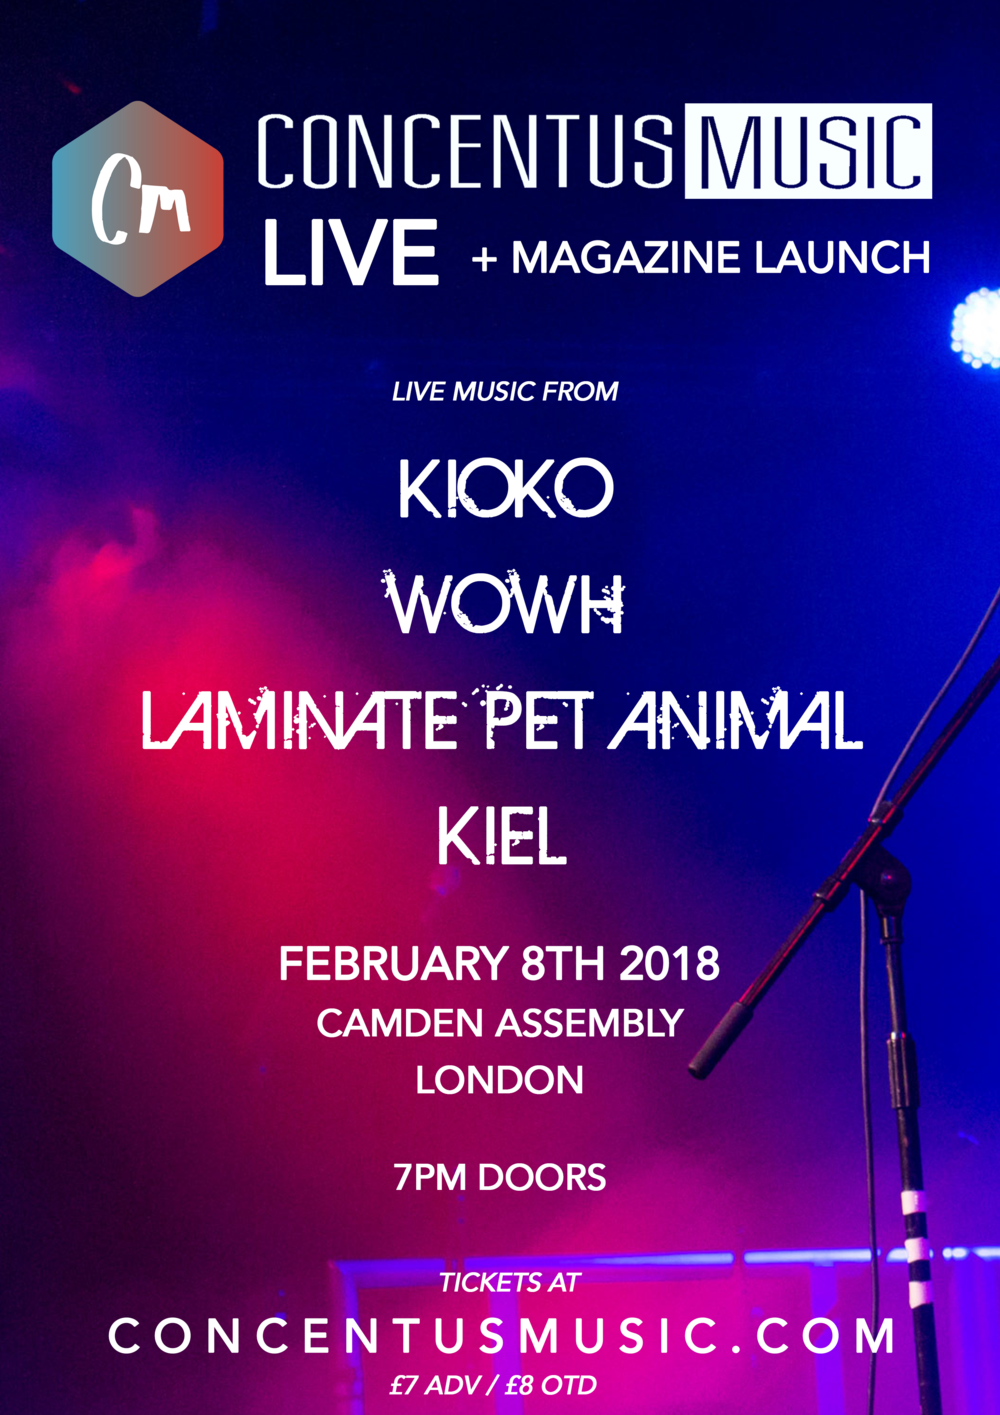 LIVE + MAGAZINE LAUNCH